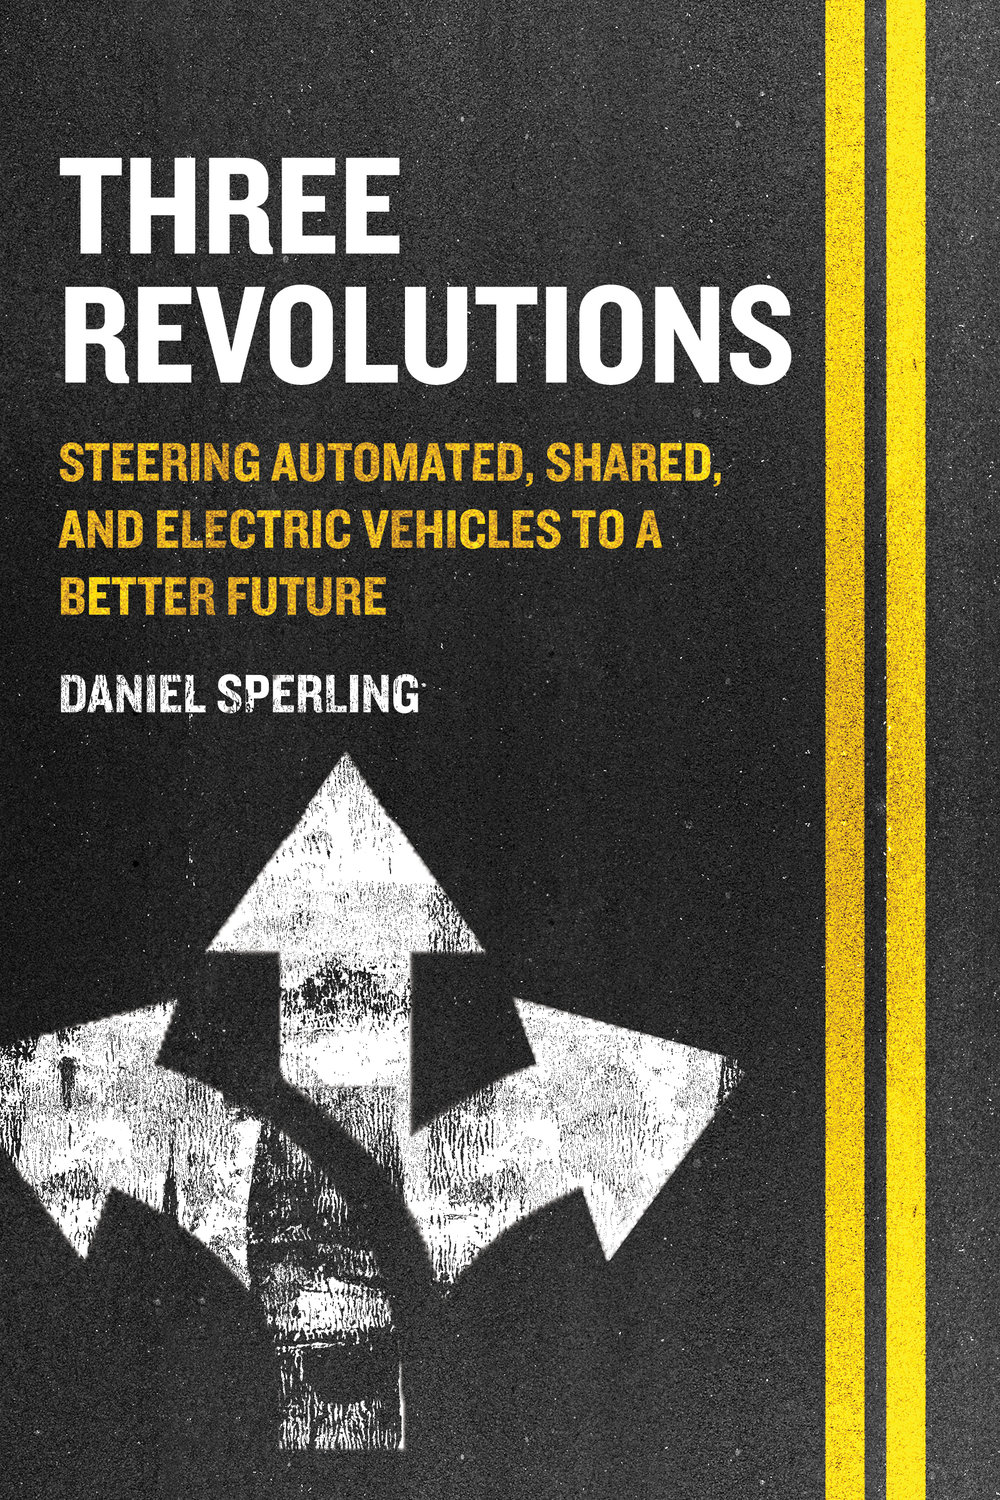 Sperling's latest book - Three Revolutions